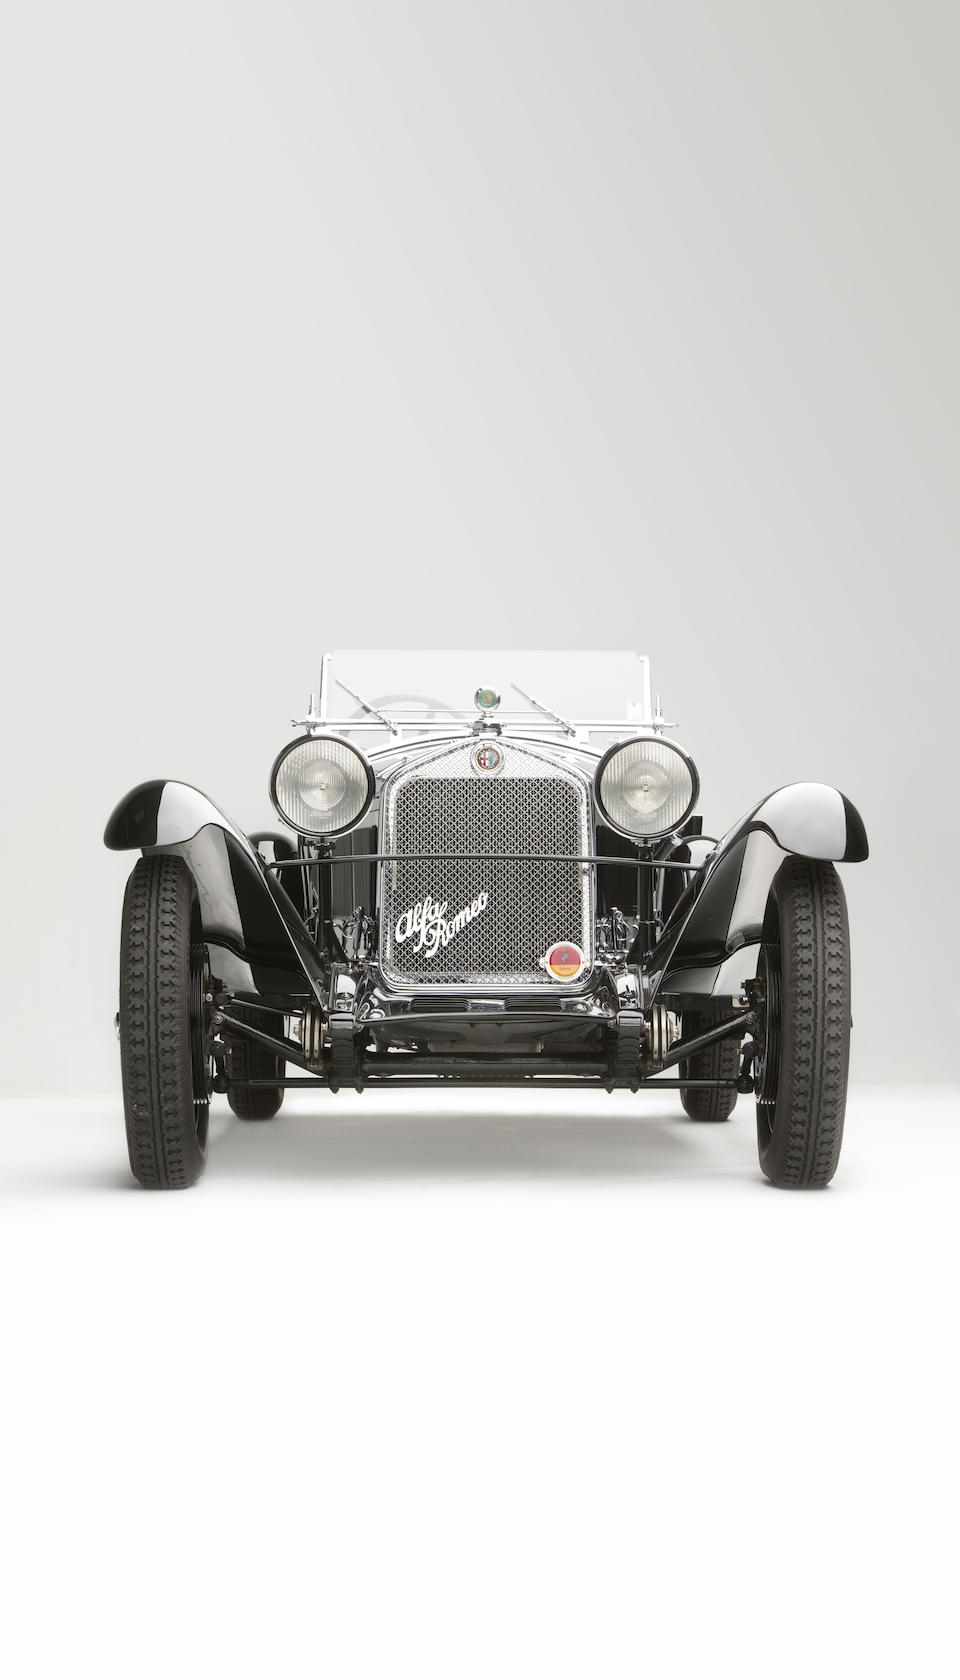 <i>The ex-Baron Philippe de Gunzbourg and Victor Polledry</i><br /><b>1931 Alfa Romeo 6C 1750 Supercharged Gran Sport Spider  </b><br />Chassis no. 10814356 <br />Engine no. 10814356